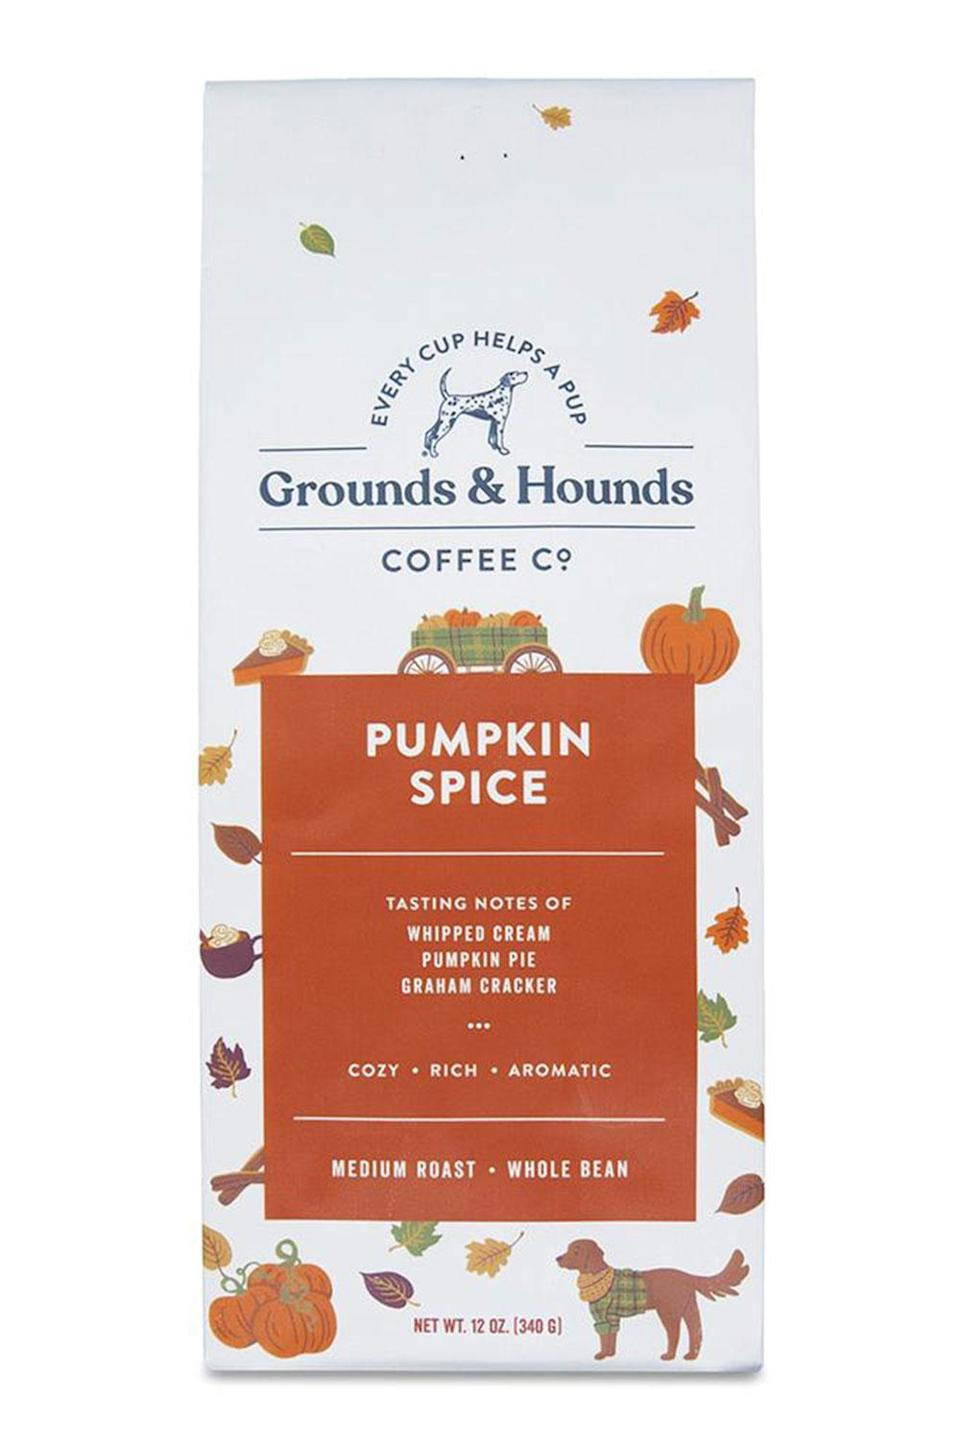 """<p>A portion of the proceeds from this pumpkin spice coffee you can brew at home go to animal rescue initiatives across the country. </p> <p><strong>Buy it!</strong> Pumpkin Spice Coffee, $13.99; <a href=""""https://groundsandhoundscoffee.com/collections/coffee-homepage/products/pumpkin-spice-coffee"""" rel=""""sponsored noopener"""" target=""""_blank"""" data-ylk=""""slk:GroundsandHoundsCoffeee.com"""" class=""""link rapid-noclick-resp"""">GroundsandHoundsCoffeee.com</a></p>"""